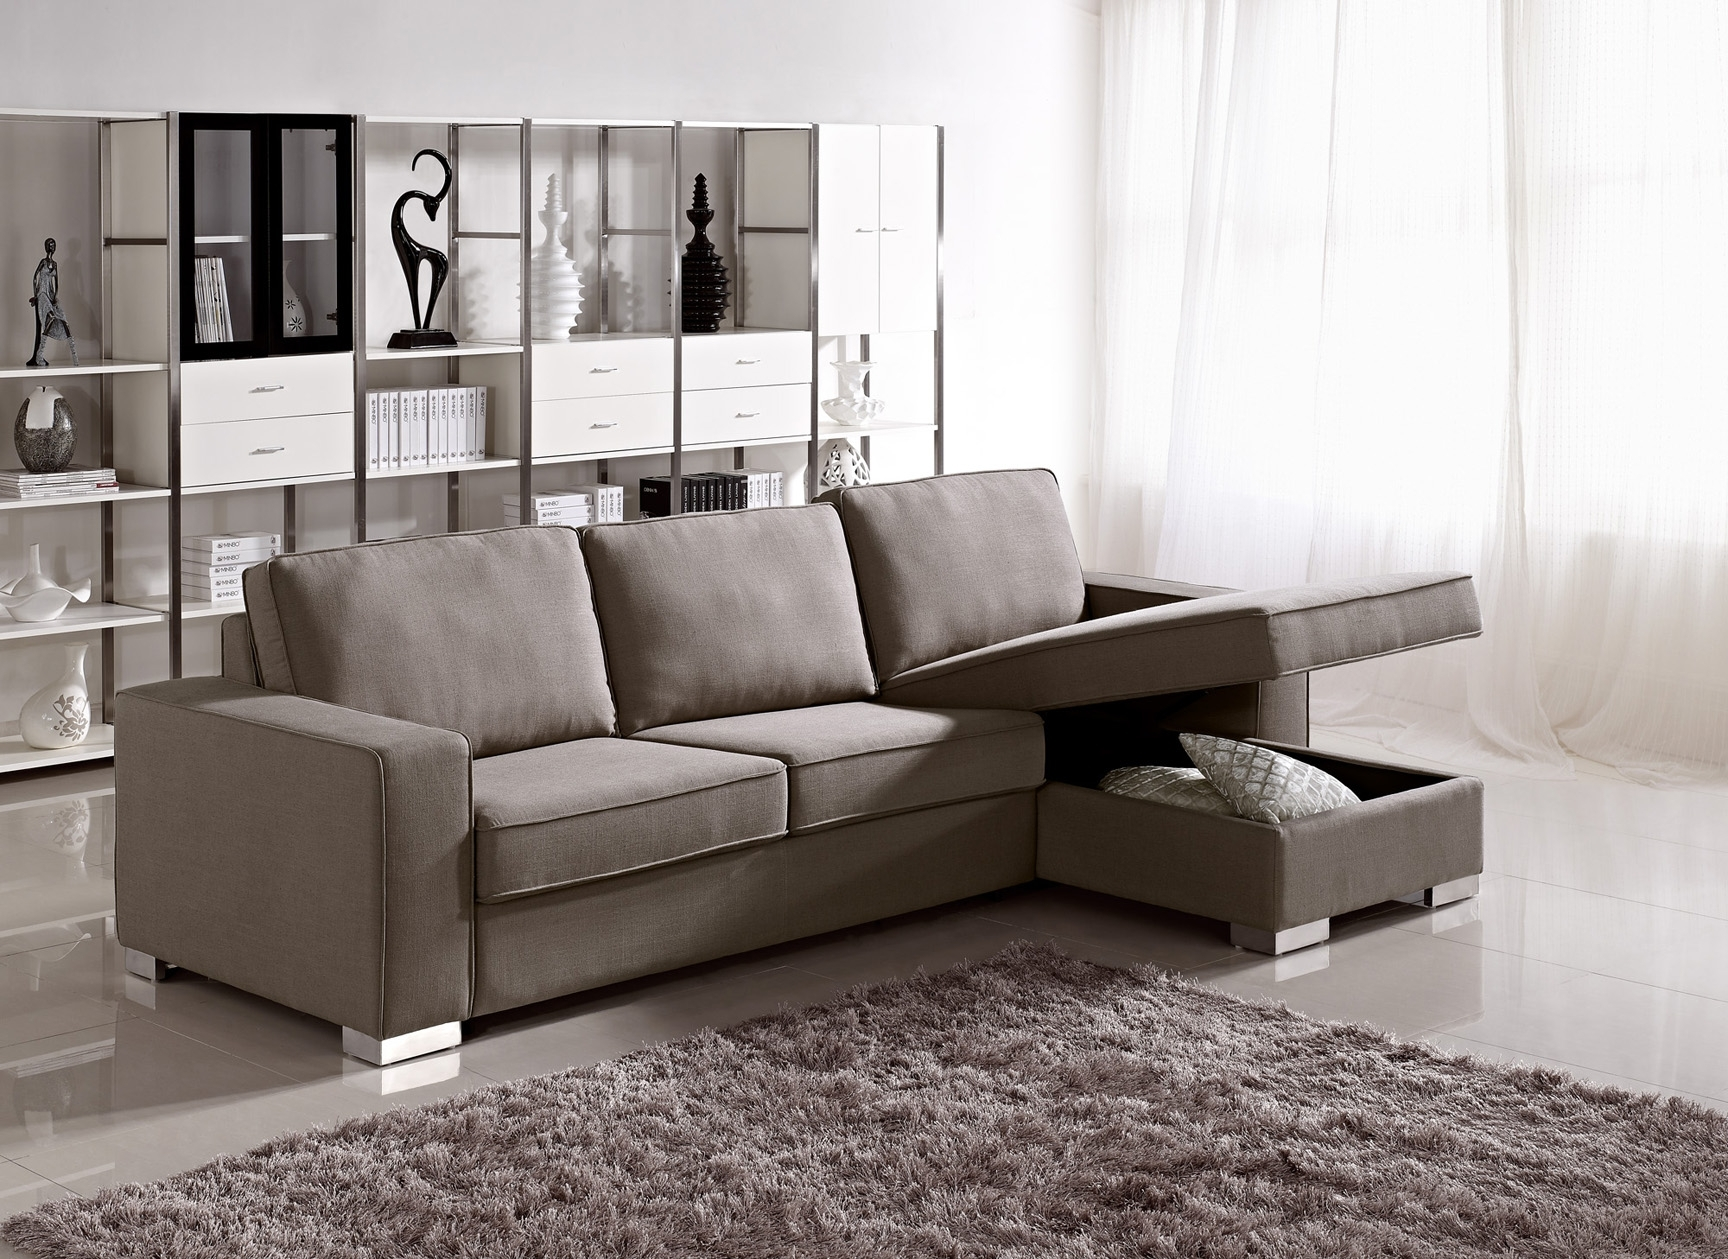 Living Room Furniture Storage Modular Sofa With Thesofa Modern Nice With Nyc Sectional Sofas (View 2 of 10)